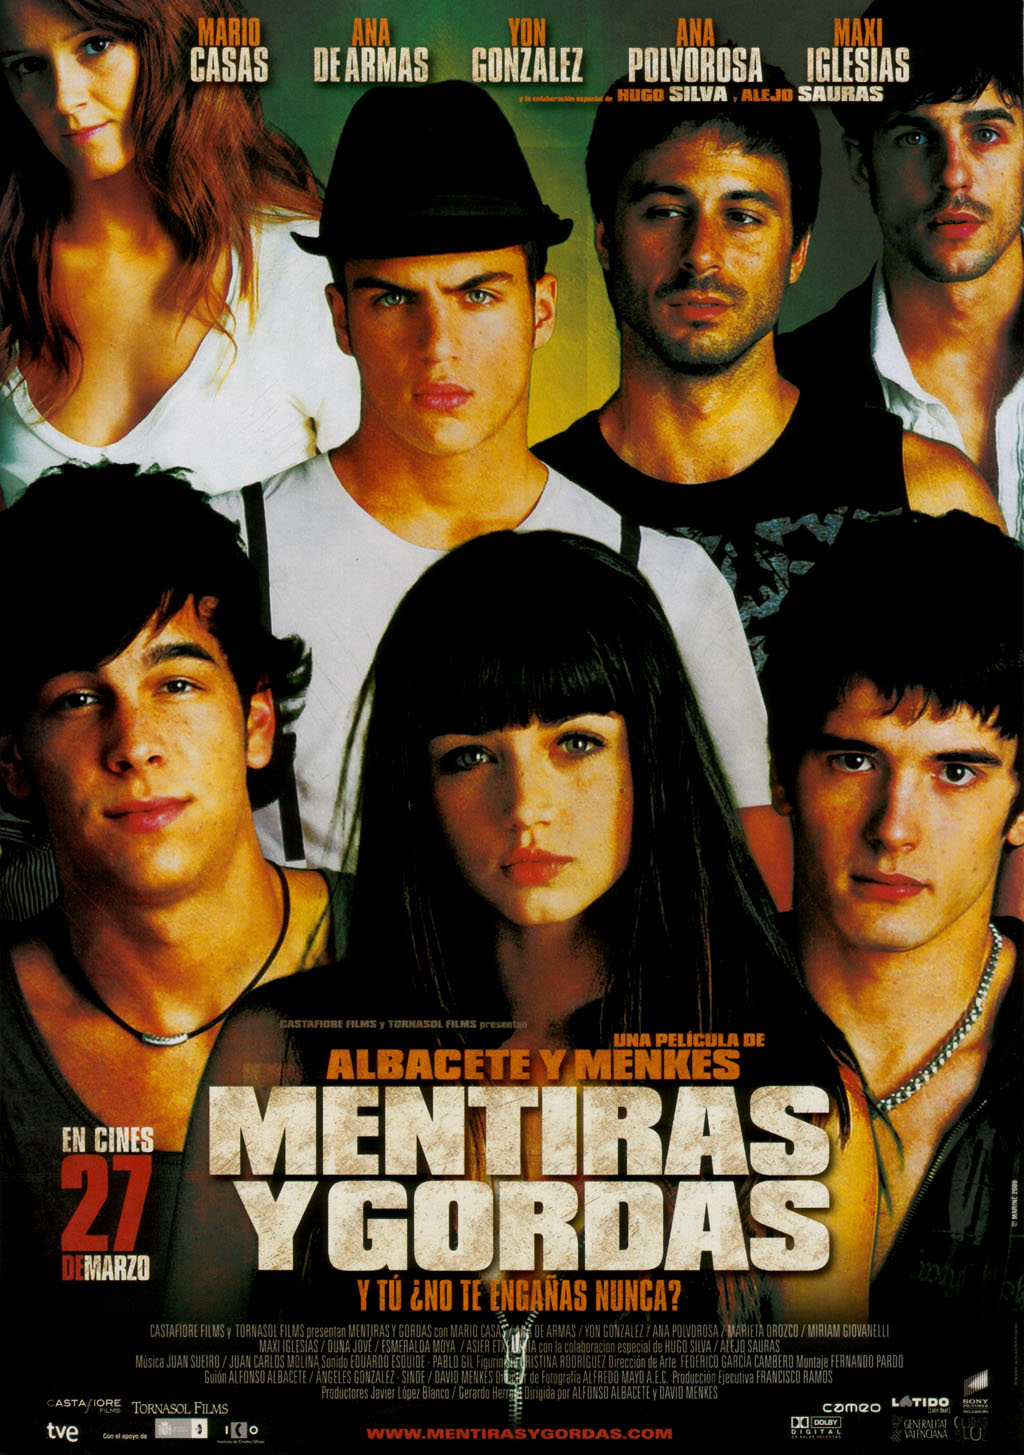 Mentiras y Gordas (2009) is a